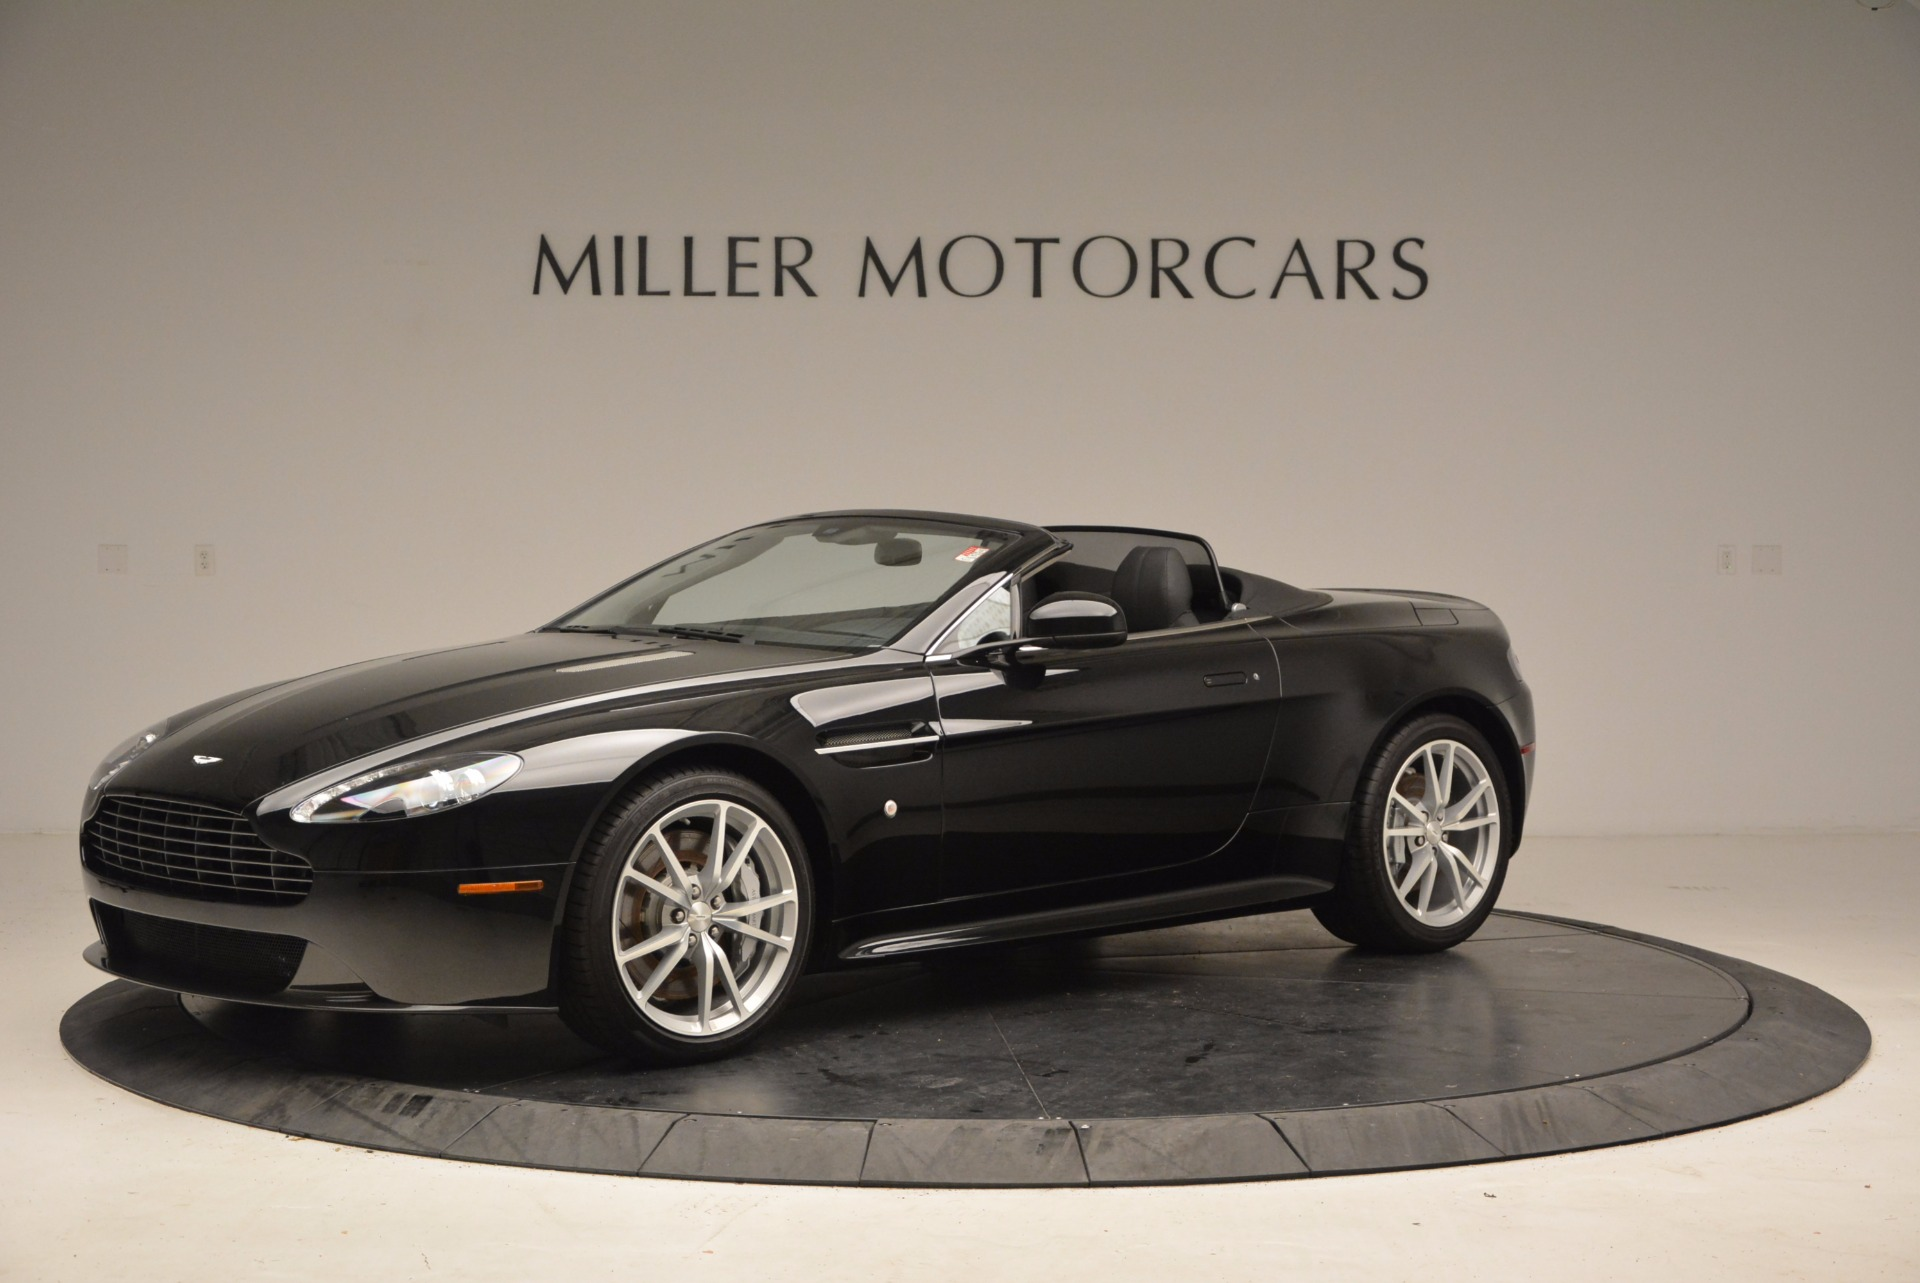 New 2016 Aston Martin V8 Vantage Roadster For Sale In Greenwich, CT 1546_p2